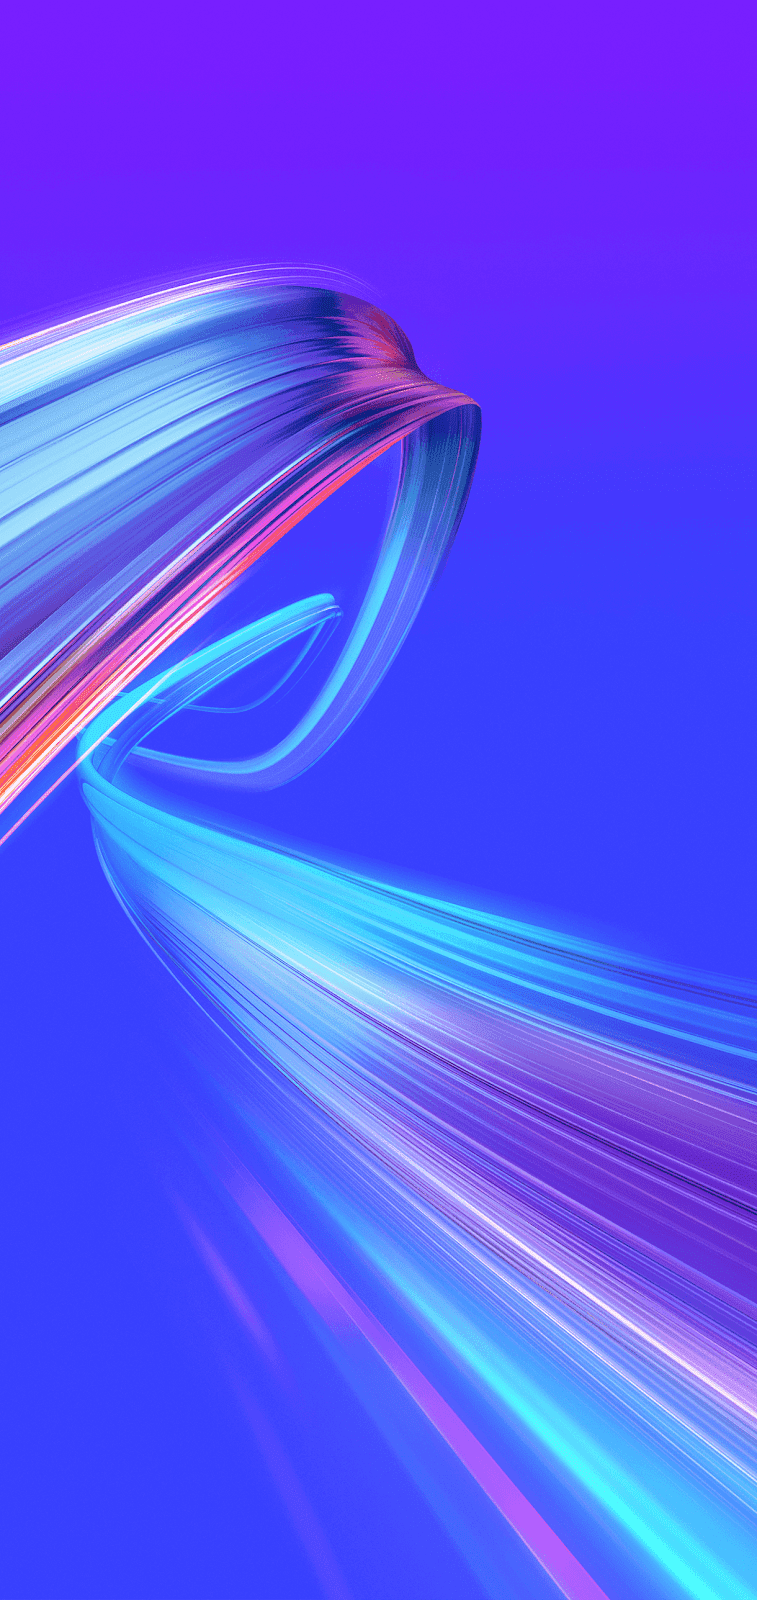 Download Zenfone Max Pro M2 Wallpaper Full HD Plus Terbaru